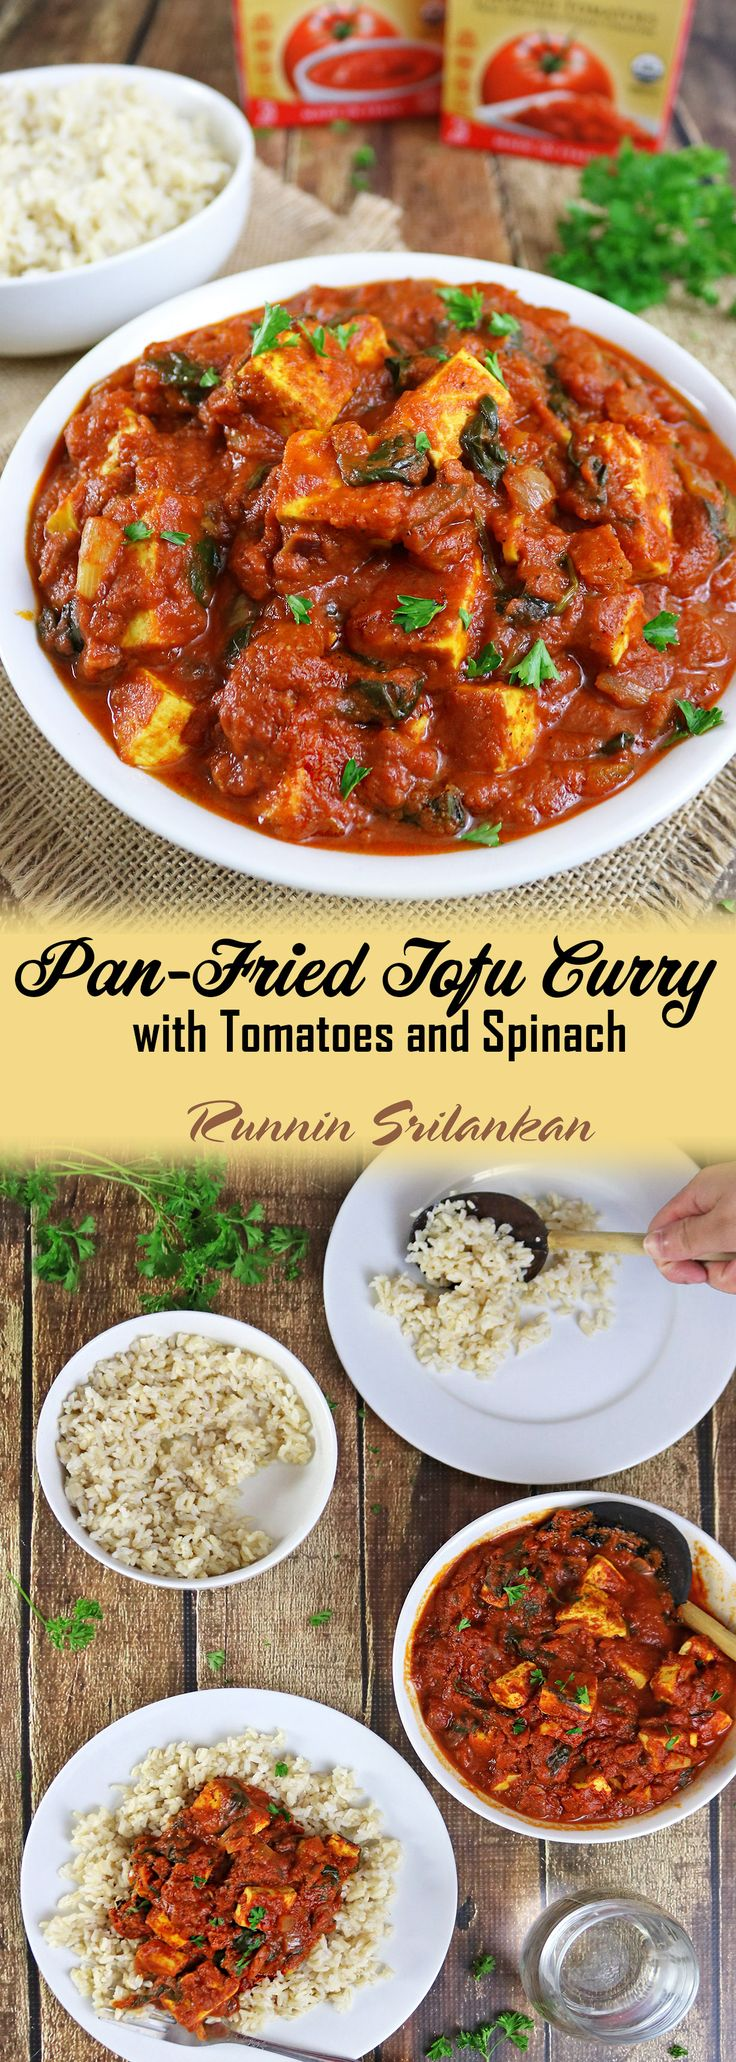 Pan Fried Tofu Curry with Tomatoes and Spinach -  a warm and comforting curry that can be enjoyed with rice, naan or even pasta